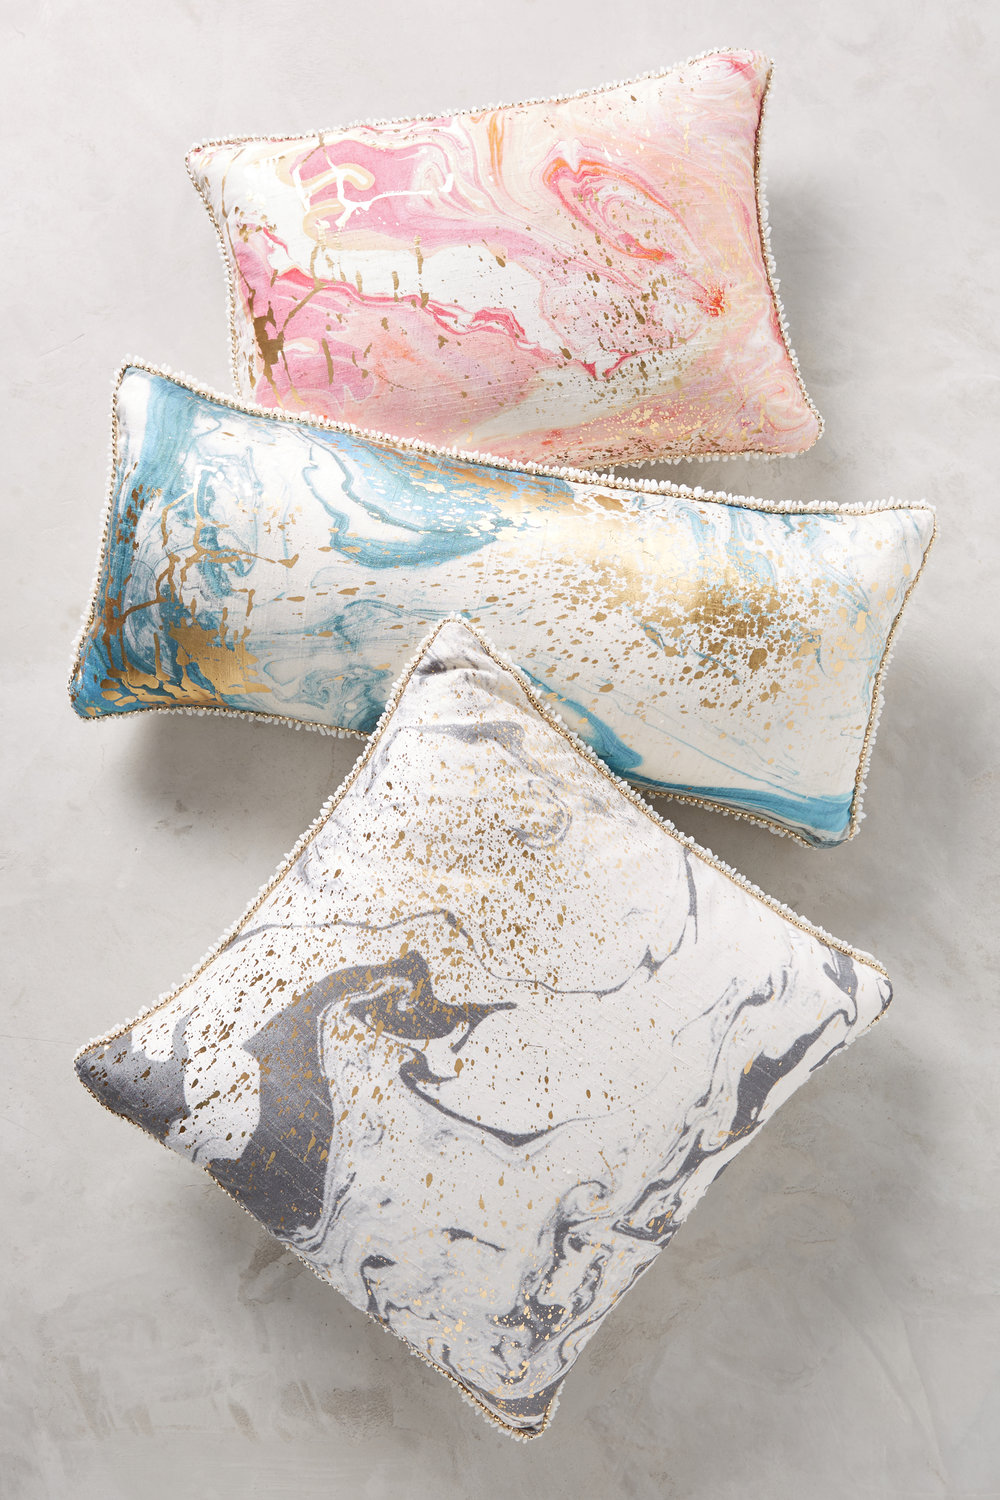 Anthropologie Marbled Cosima Pillow gives you the great look of marble with an extra plush feel - Spring Design Trends by Phoebe Oldrey Interior Design.jpg